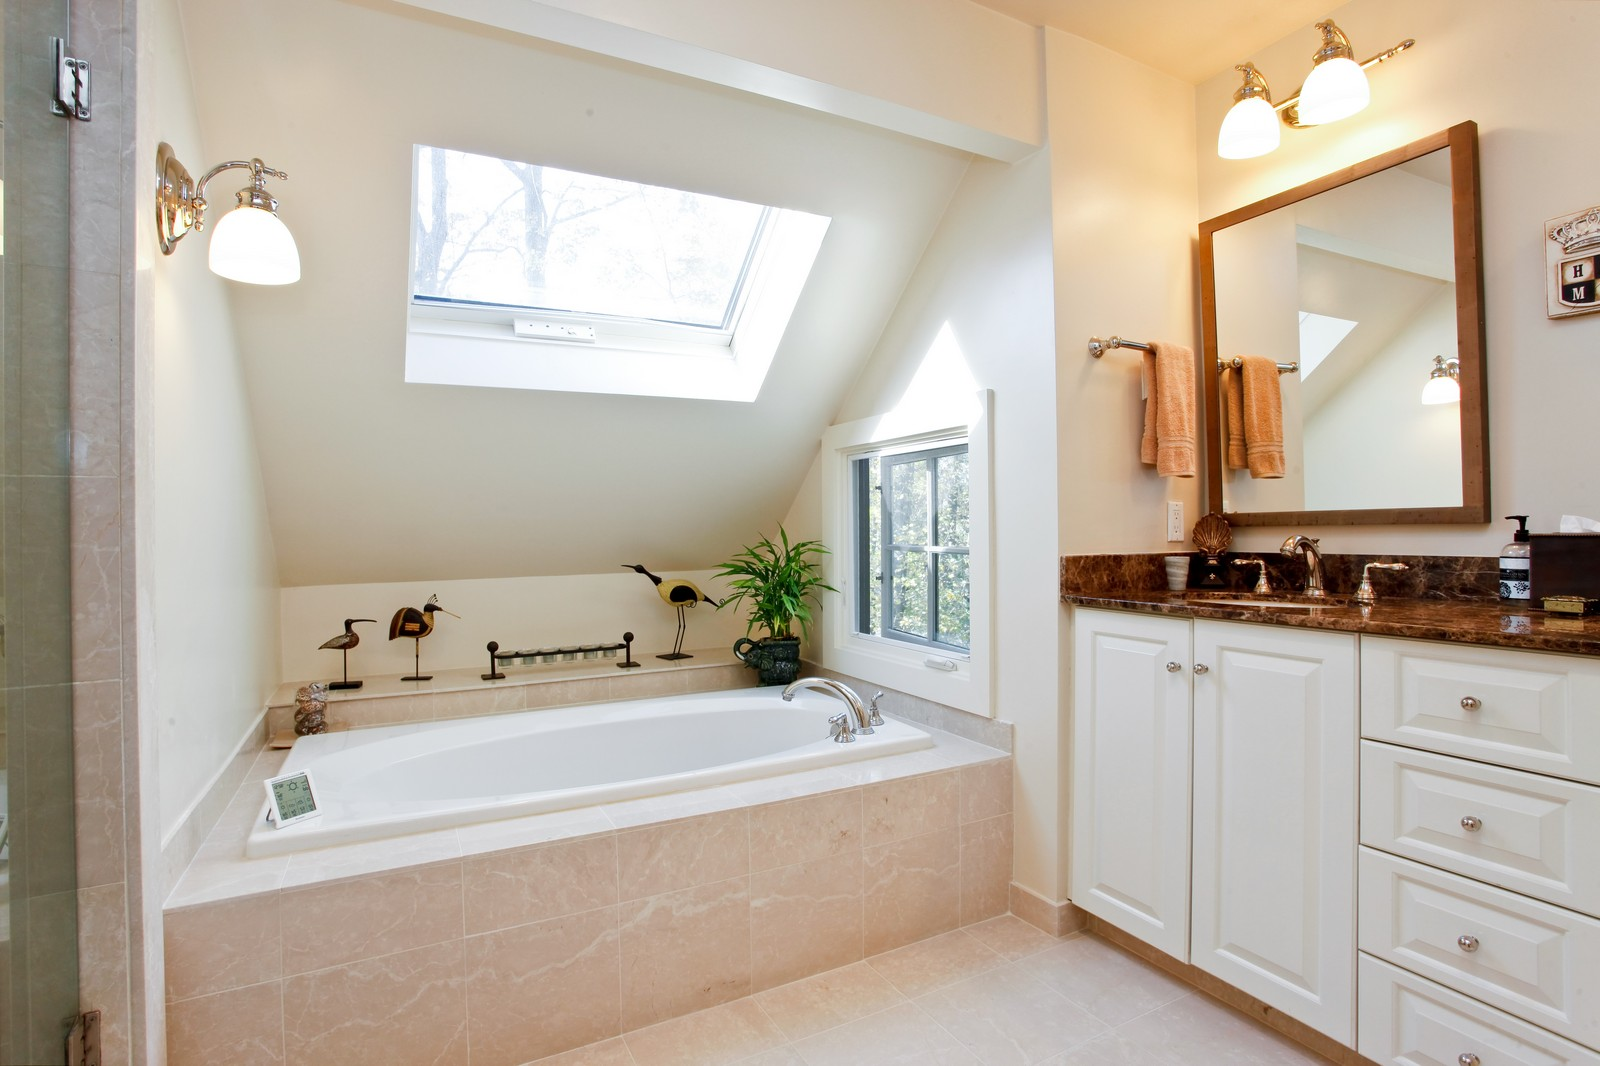 Real Estate Photography - 30 Hadden Rd, Scarsdale, NY, 10583 - Master Bathroom